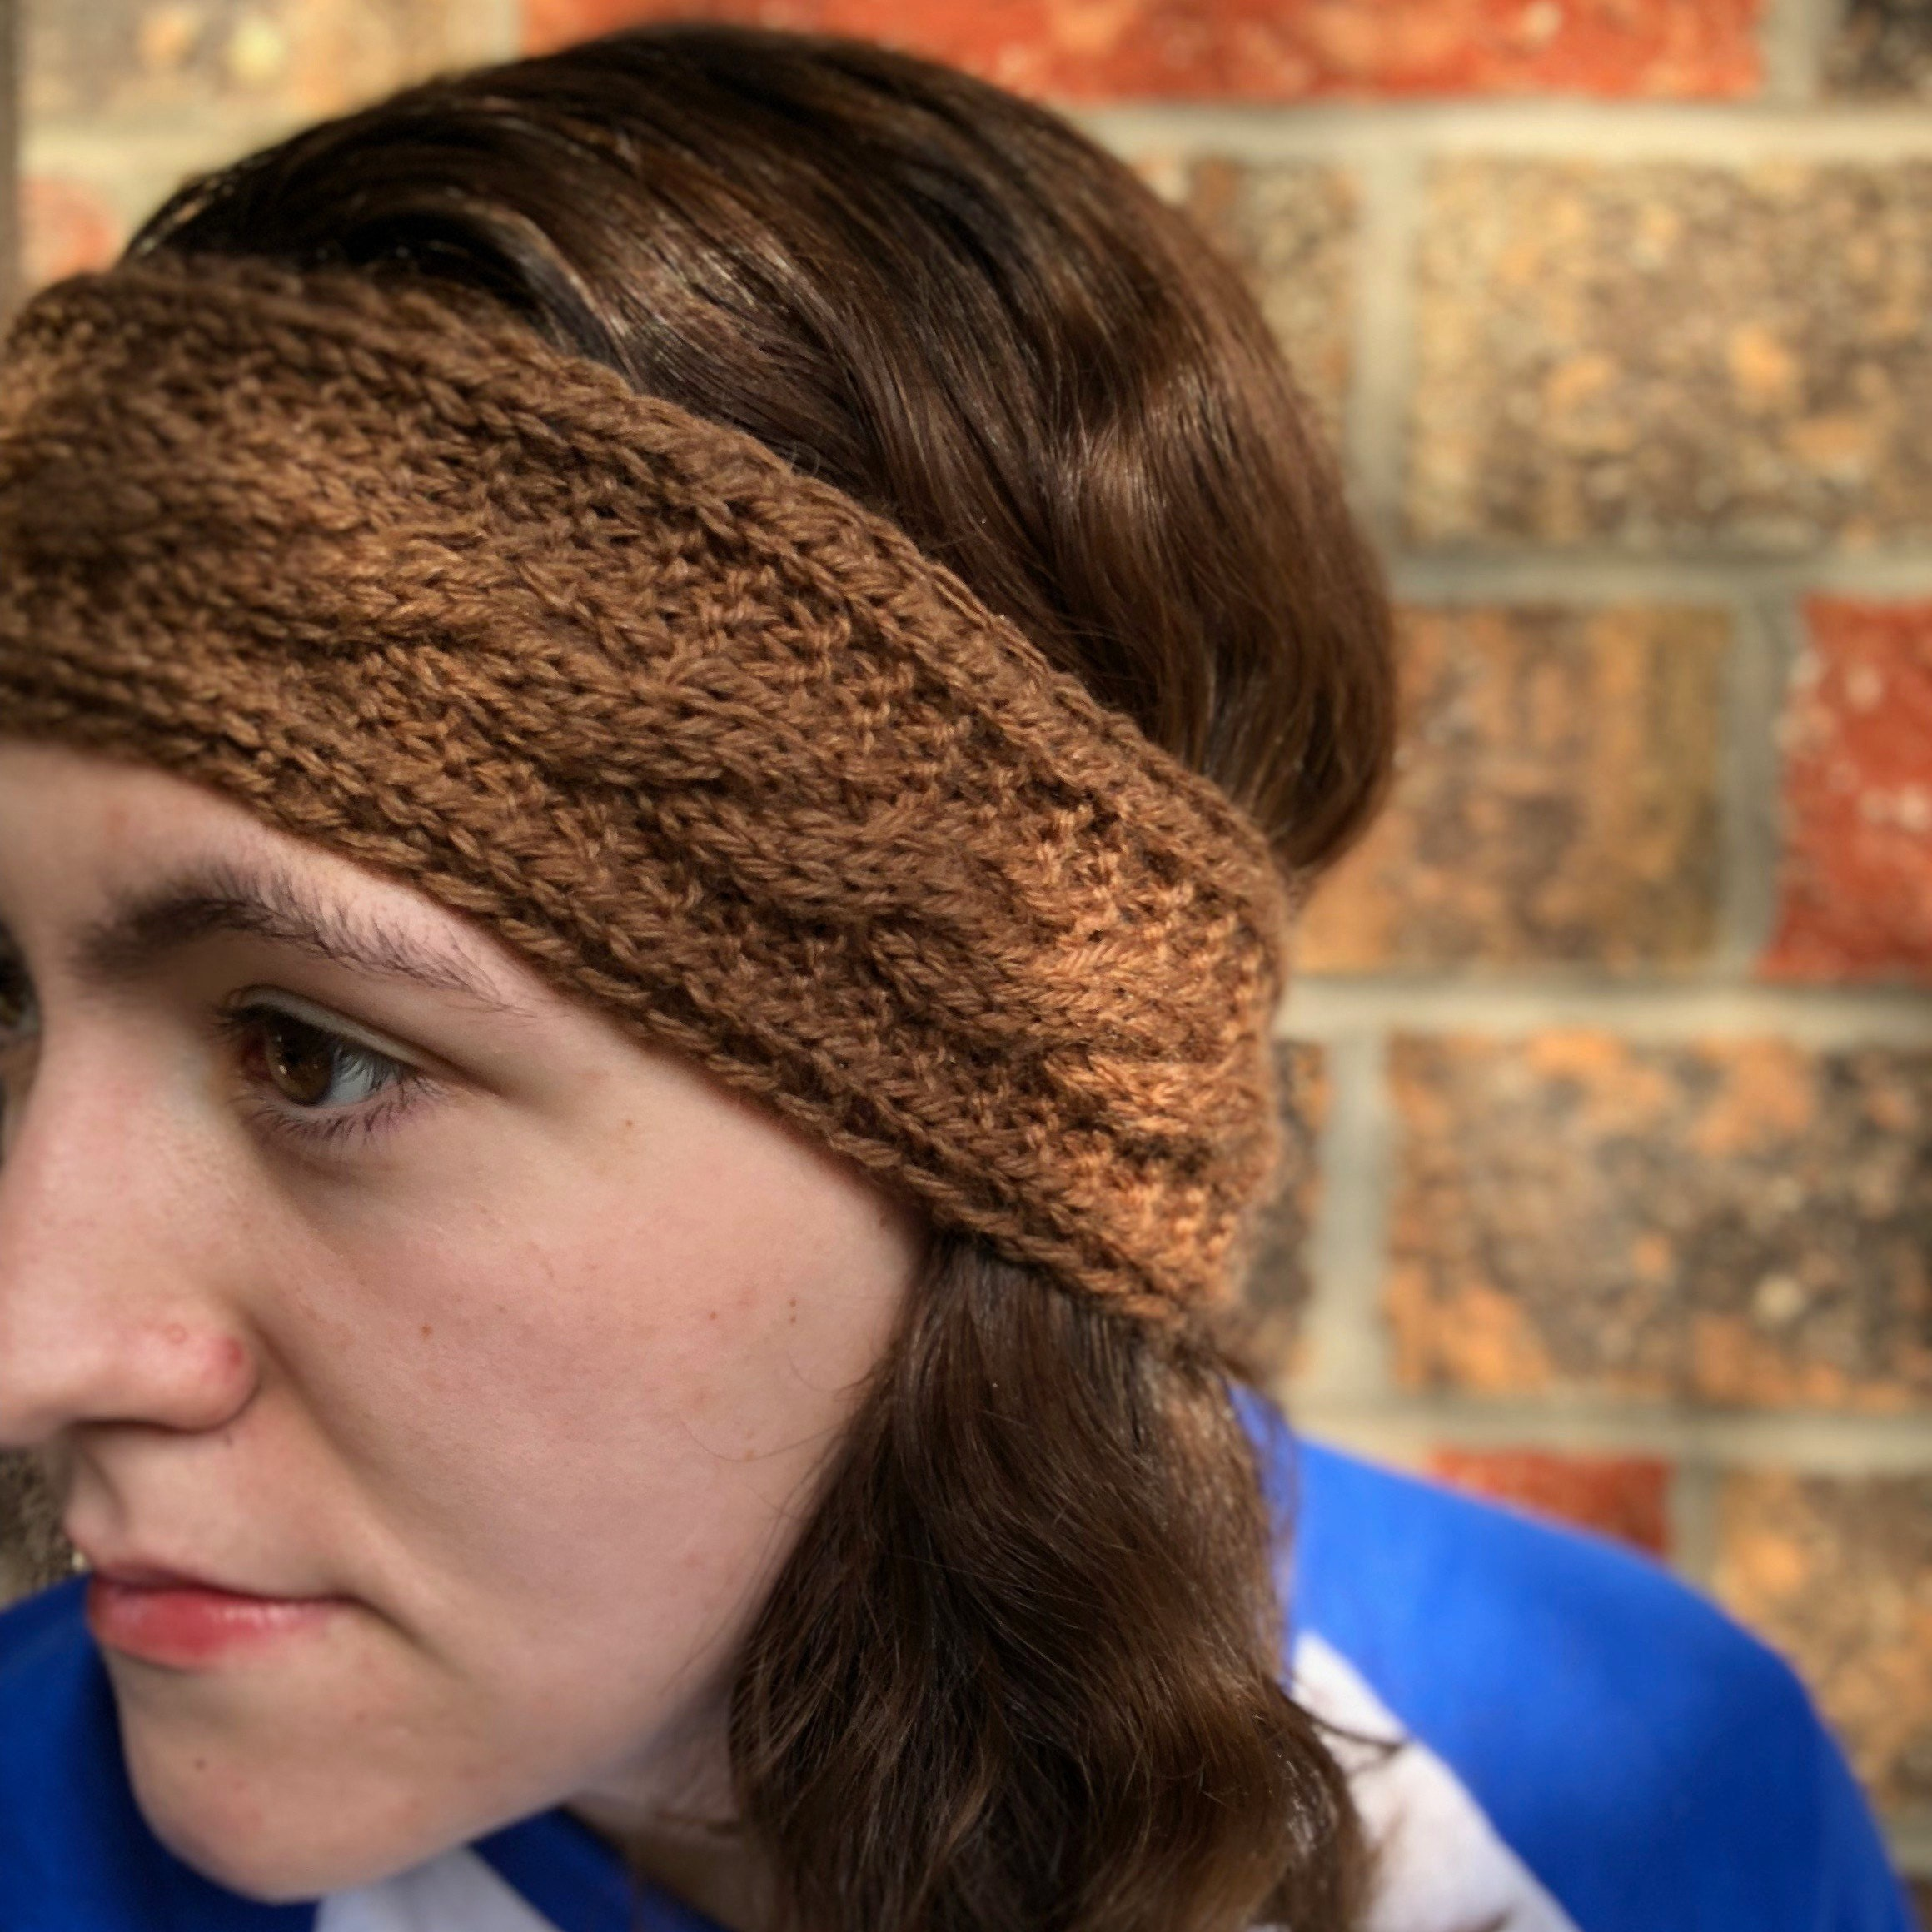 Woman wearing knitted headband